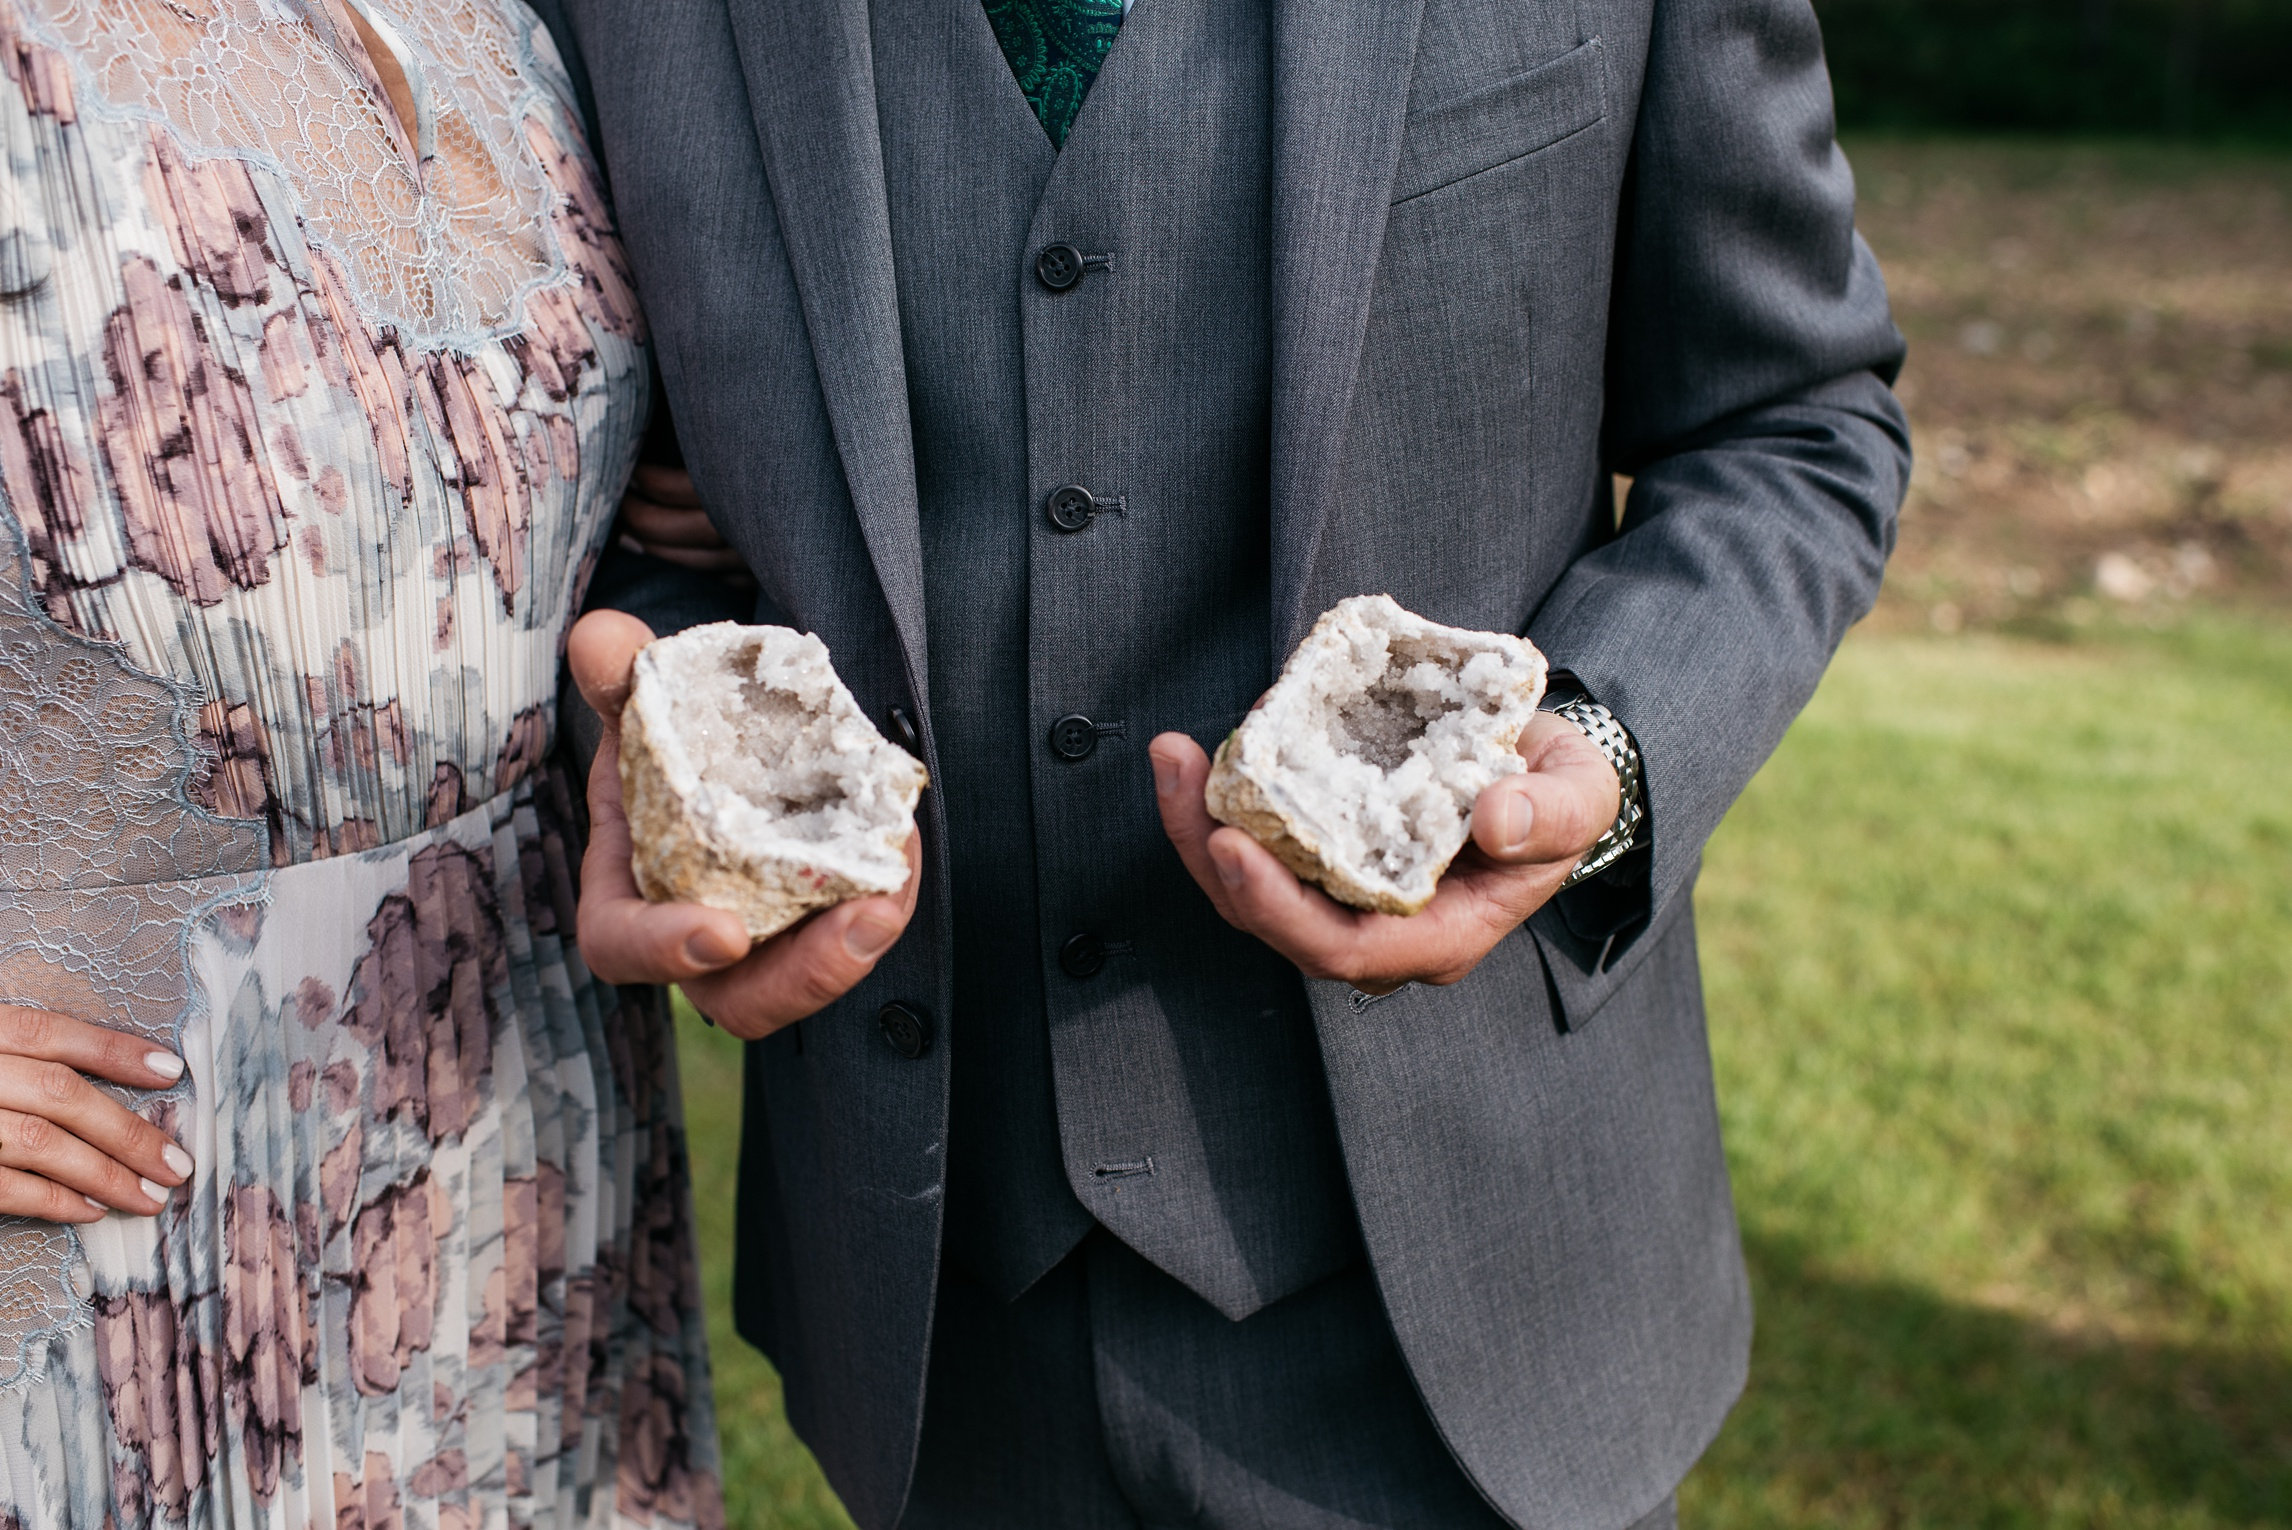 A geode from a wedding at Camp Hale near Vail, Colorado. Wedding photography by Sonja Salzburg of Sonja K Photography.